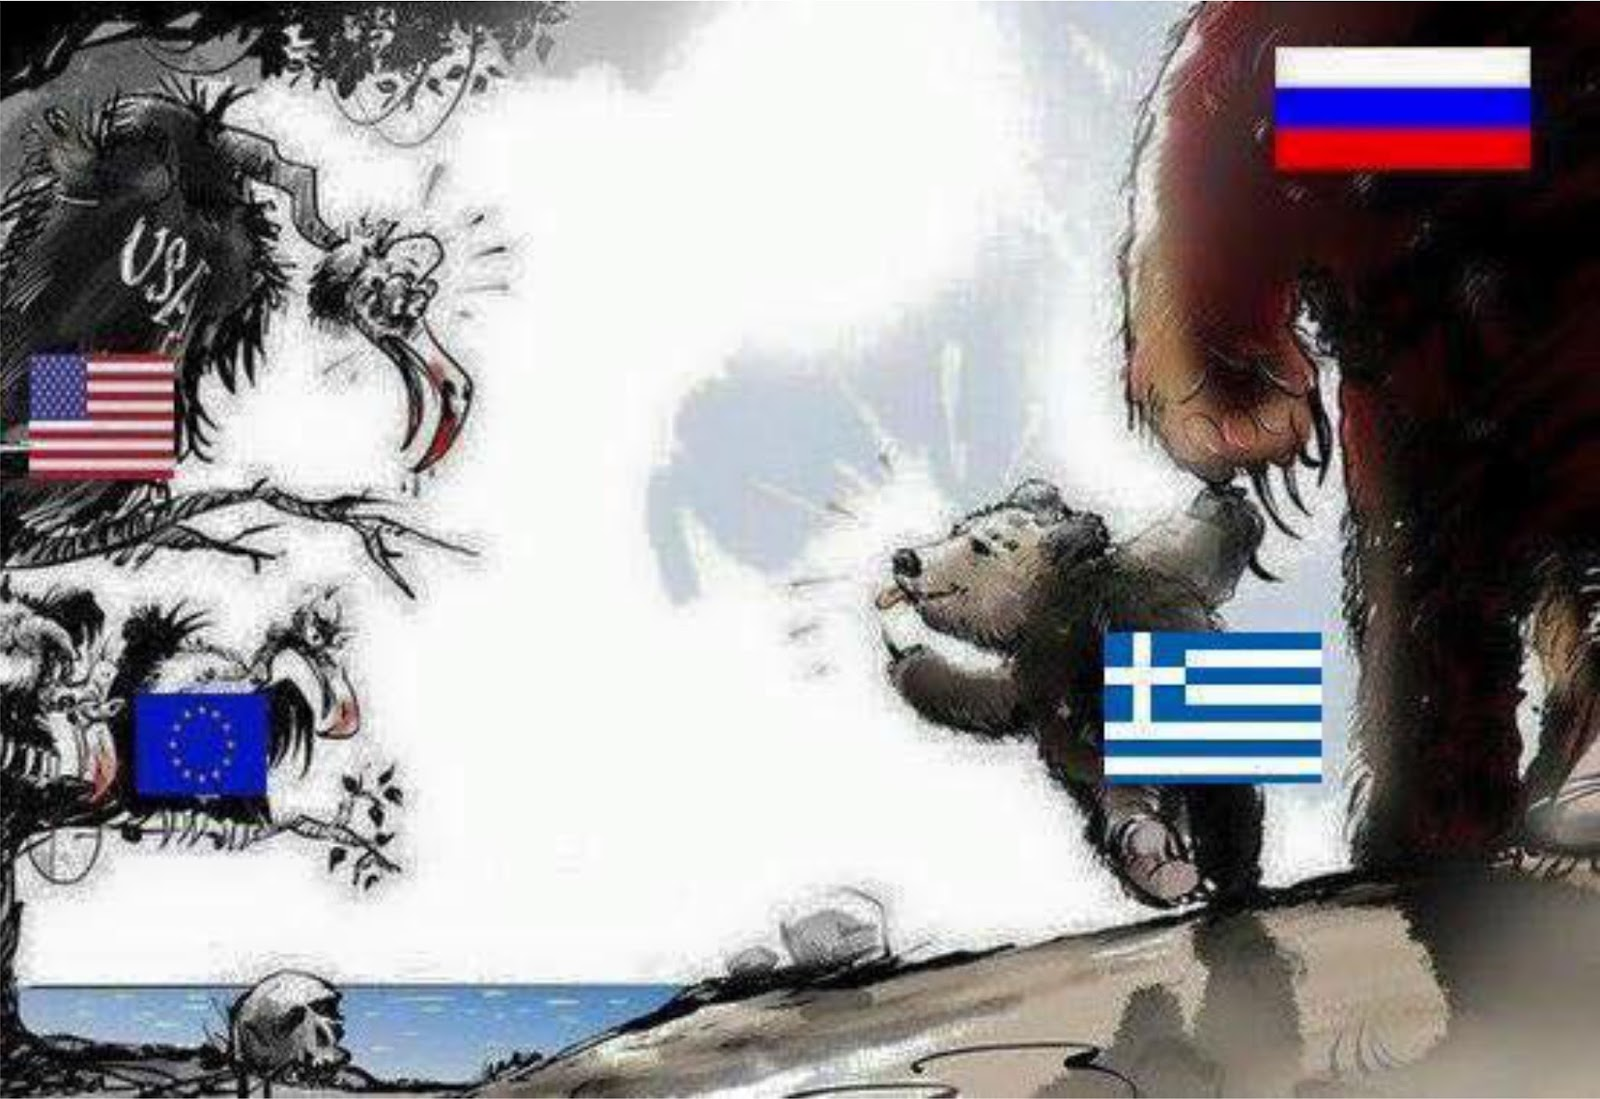 http://4.bp.blogspot.com/-3RrIDgGCvK8/VZqIsO-CxHI/AAAAAAAAHh0/MMmcH7Lzq9o/s1600/Greece%2BEU%2Breferendum.%2BGreferendum.%2BAthens%2B5th%2BJuly%2B2015.%2BNO.%2B%25CE%258C%25CE%25A7%25CE%2599.%2BCartoon.%2B%25231ab%2B%25282%2529.jpg?SSImageQuality=Full